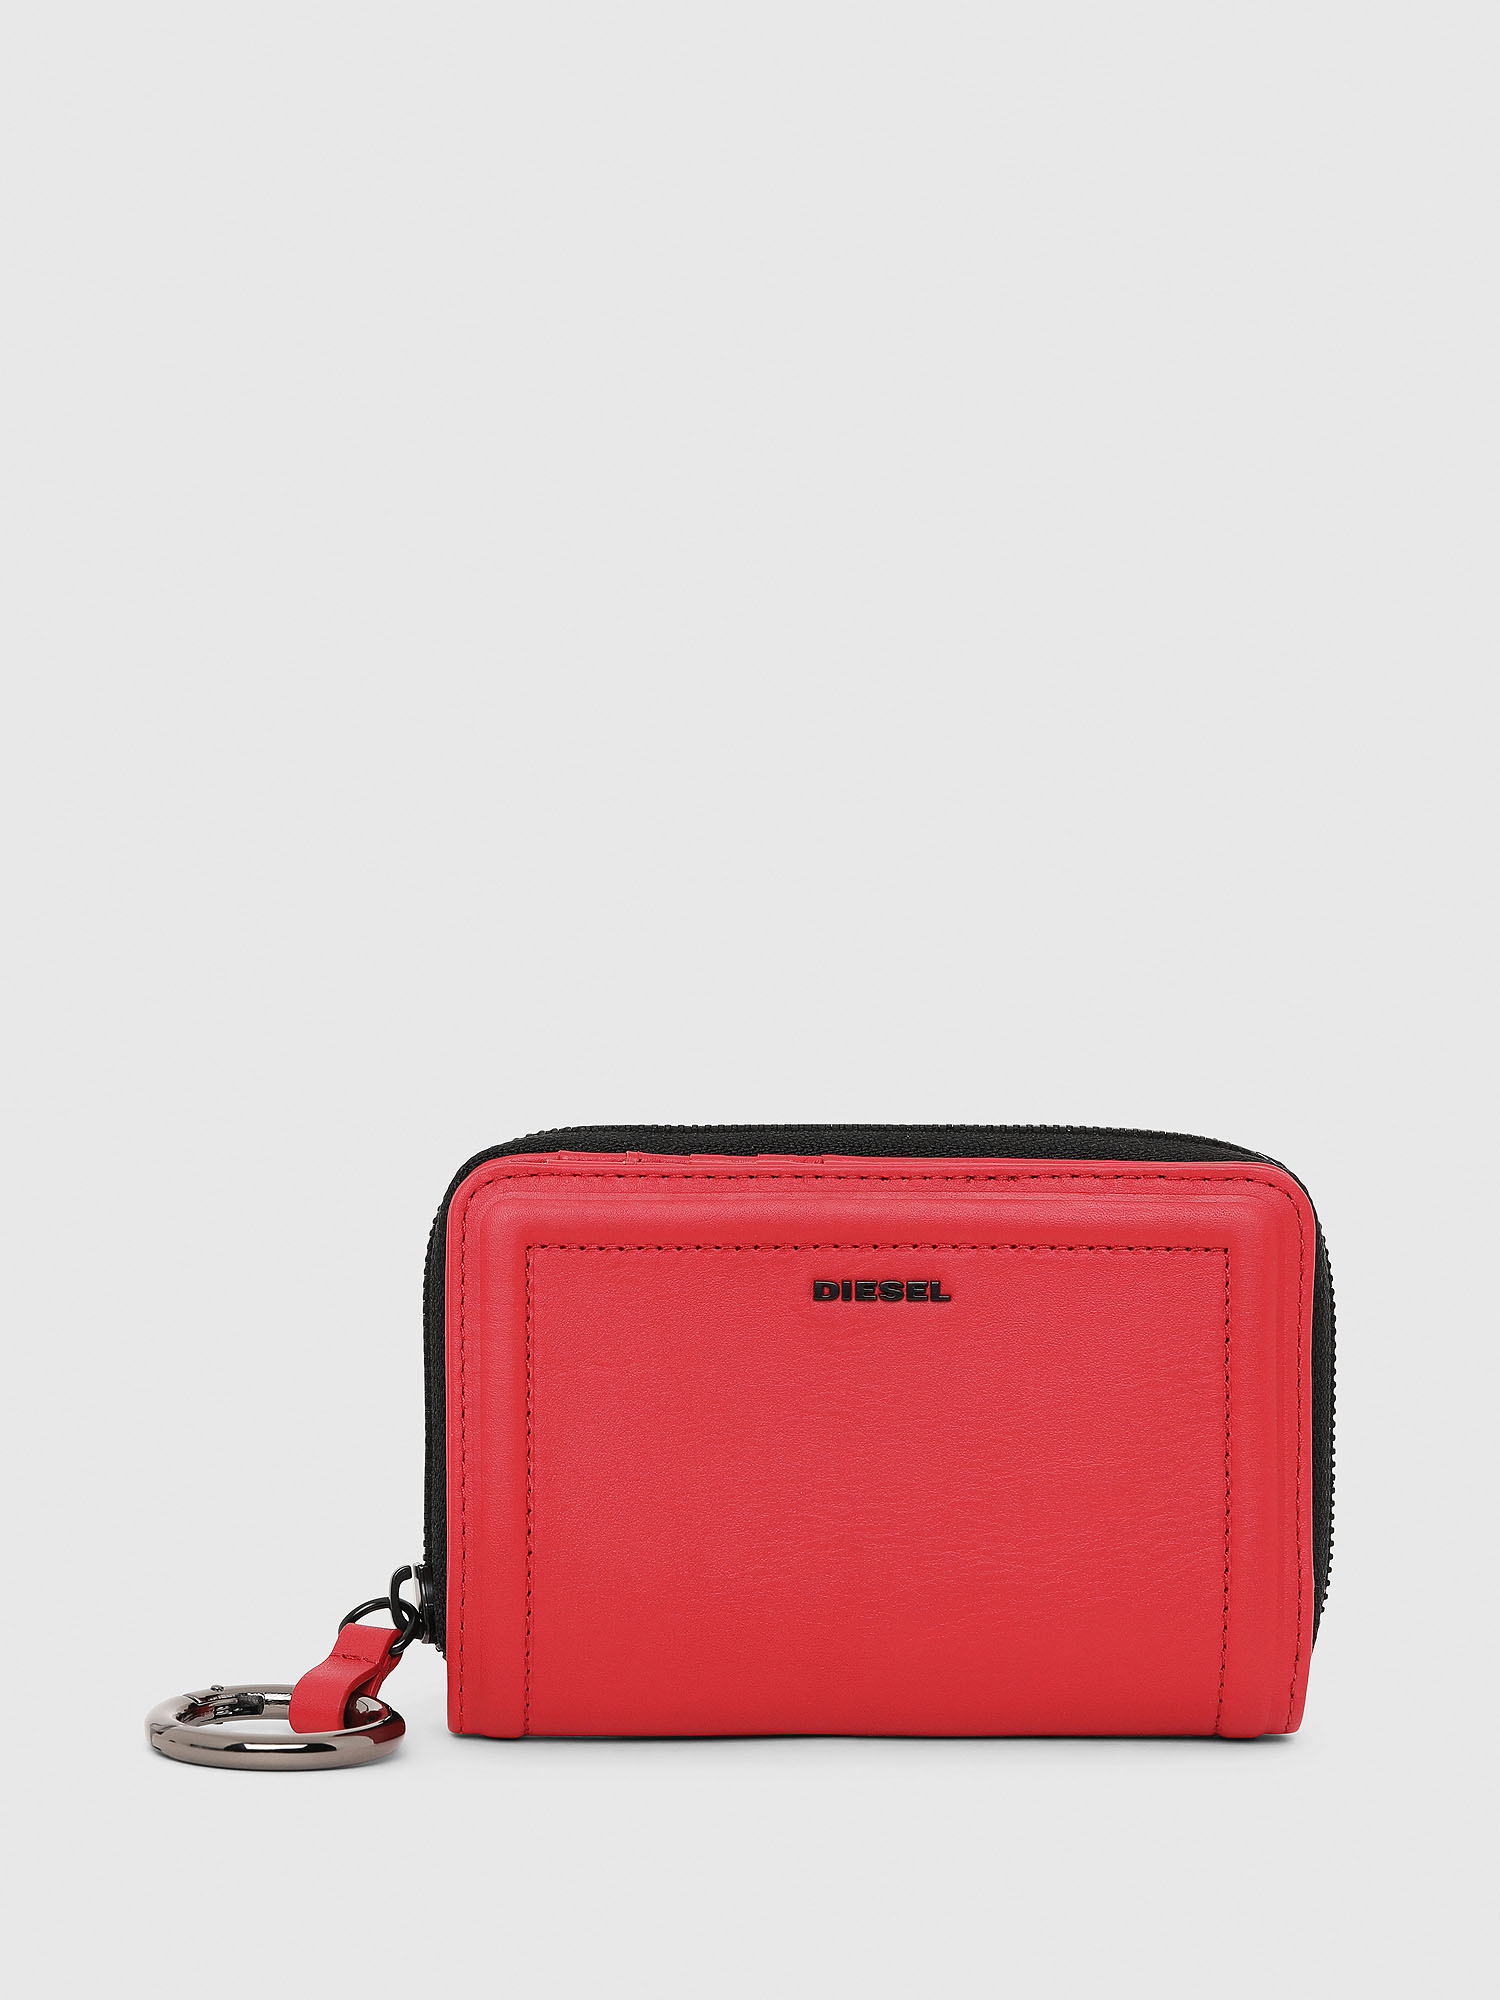 Diesel - BUSINESS LC,  - Small Wallets - Image 1